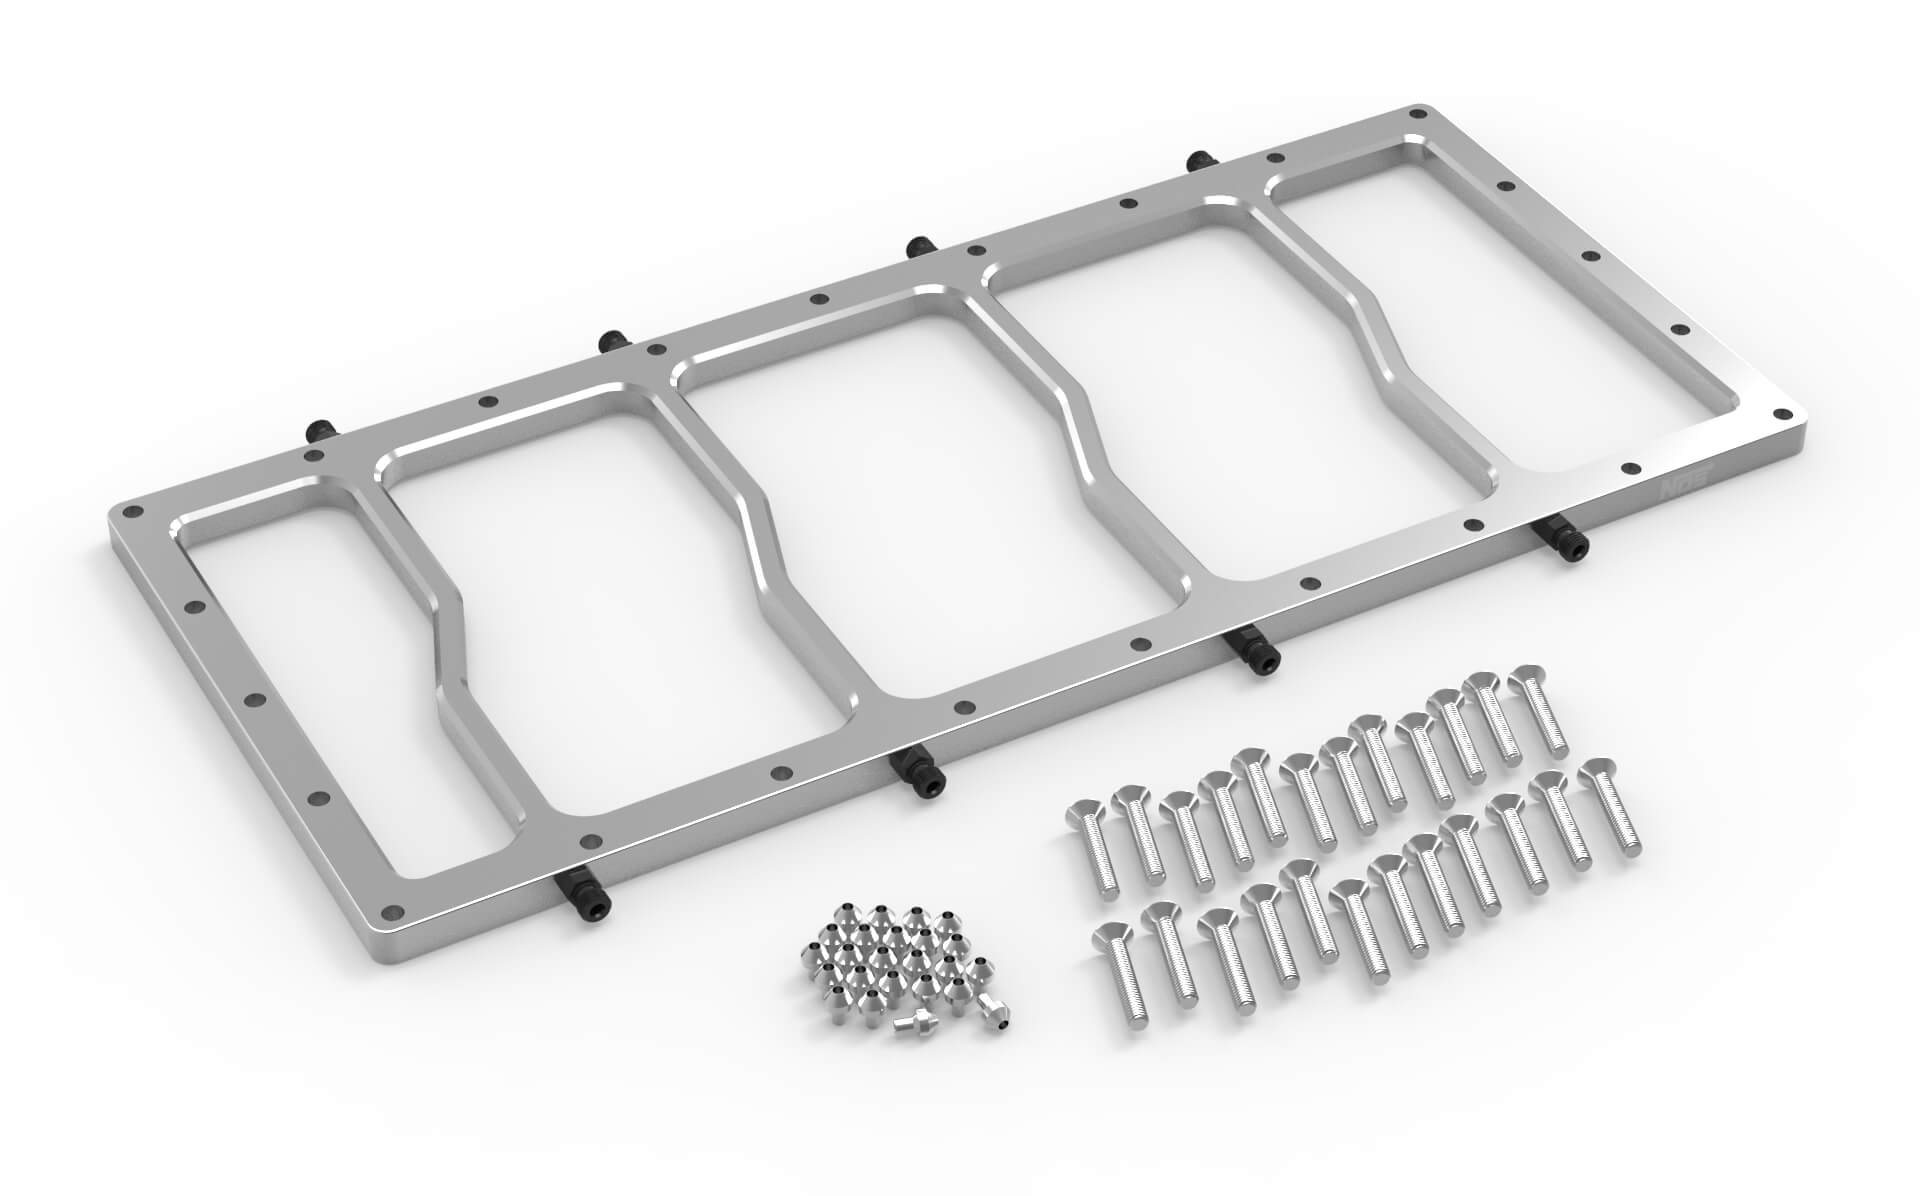 NOS Dry Nitrous Plate for Sniper EFI Fabricated Race Series LS Intake Manifolds-Silver